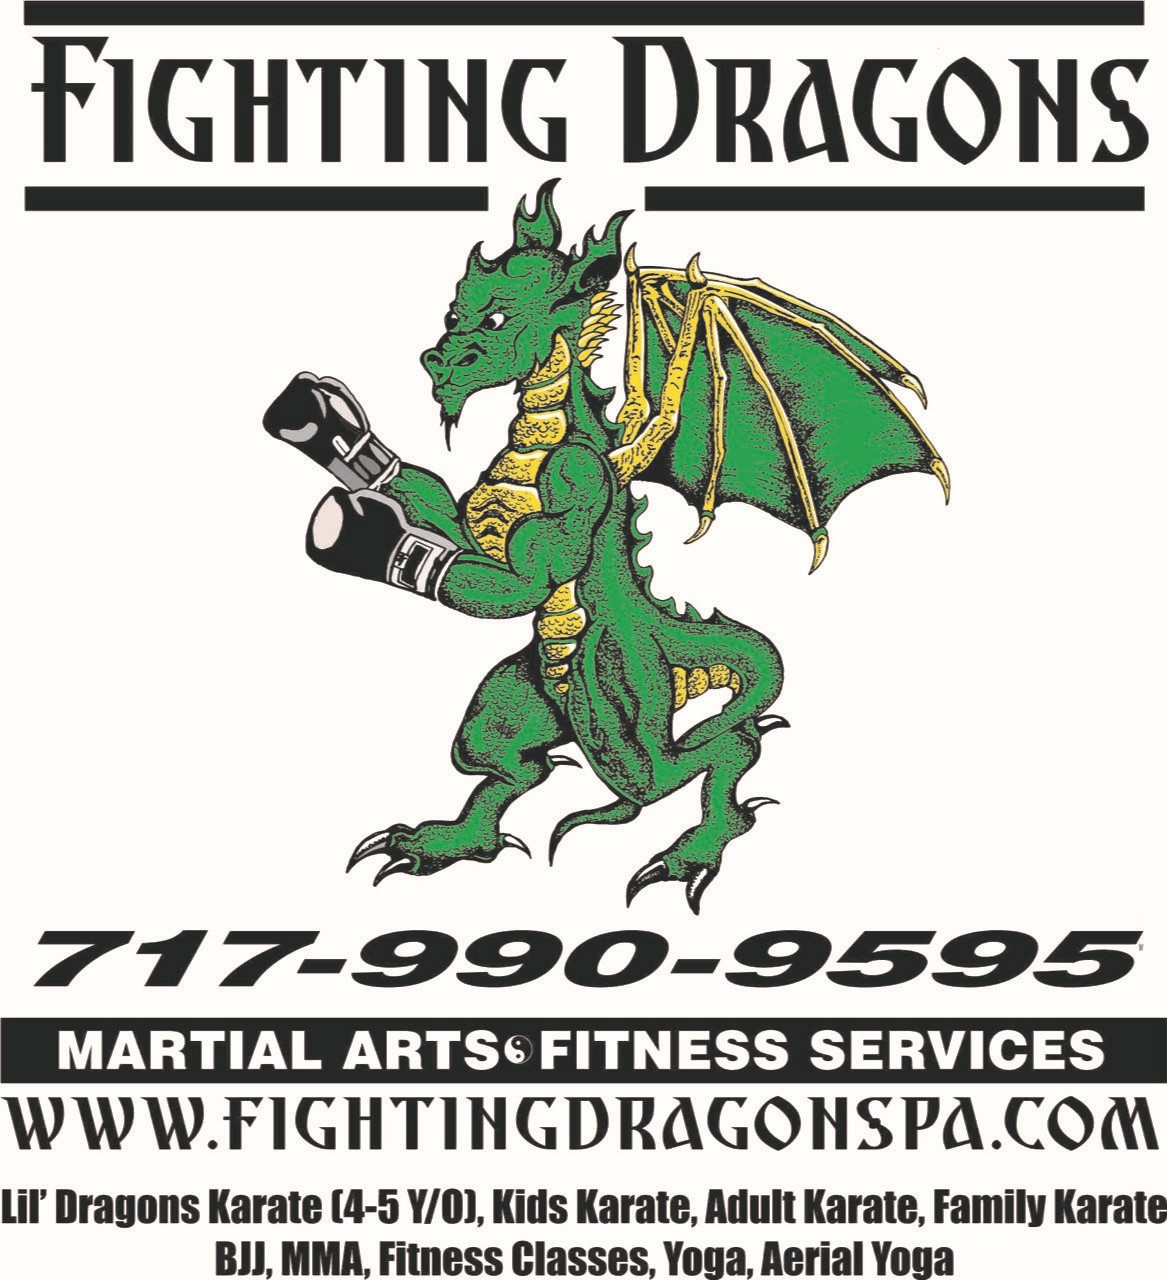 fighting dragons ad with color (1)